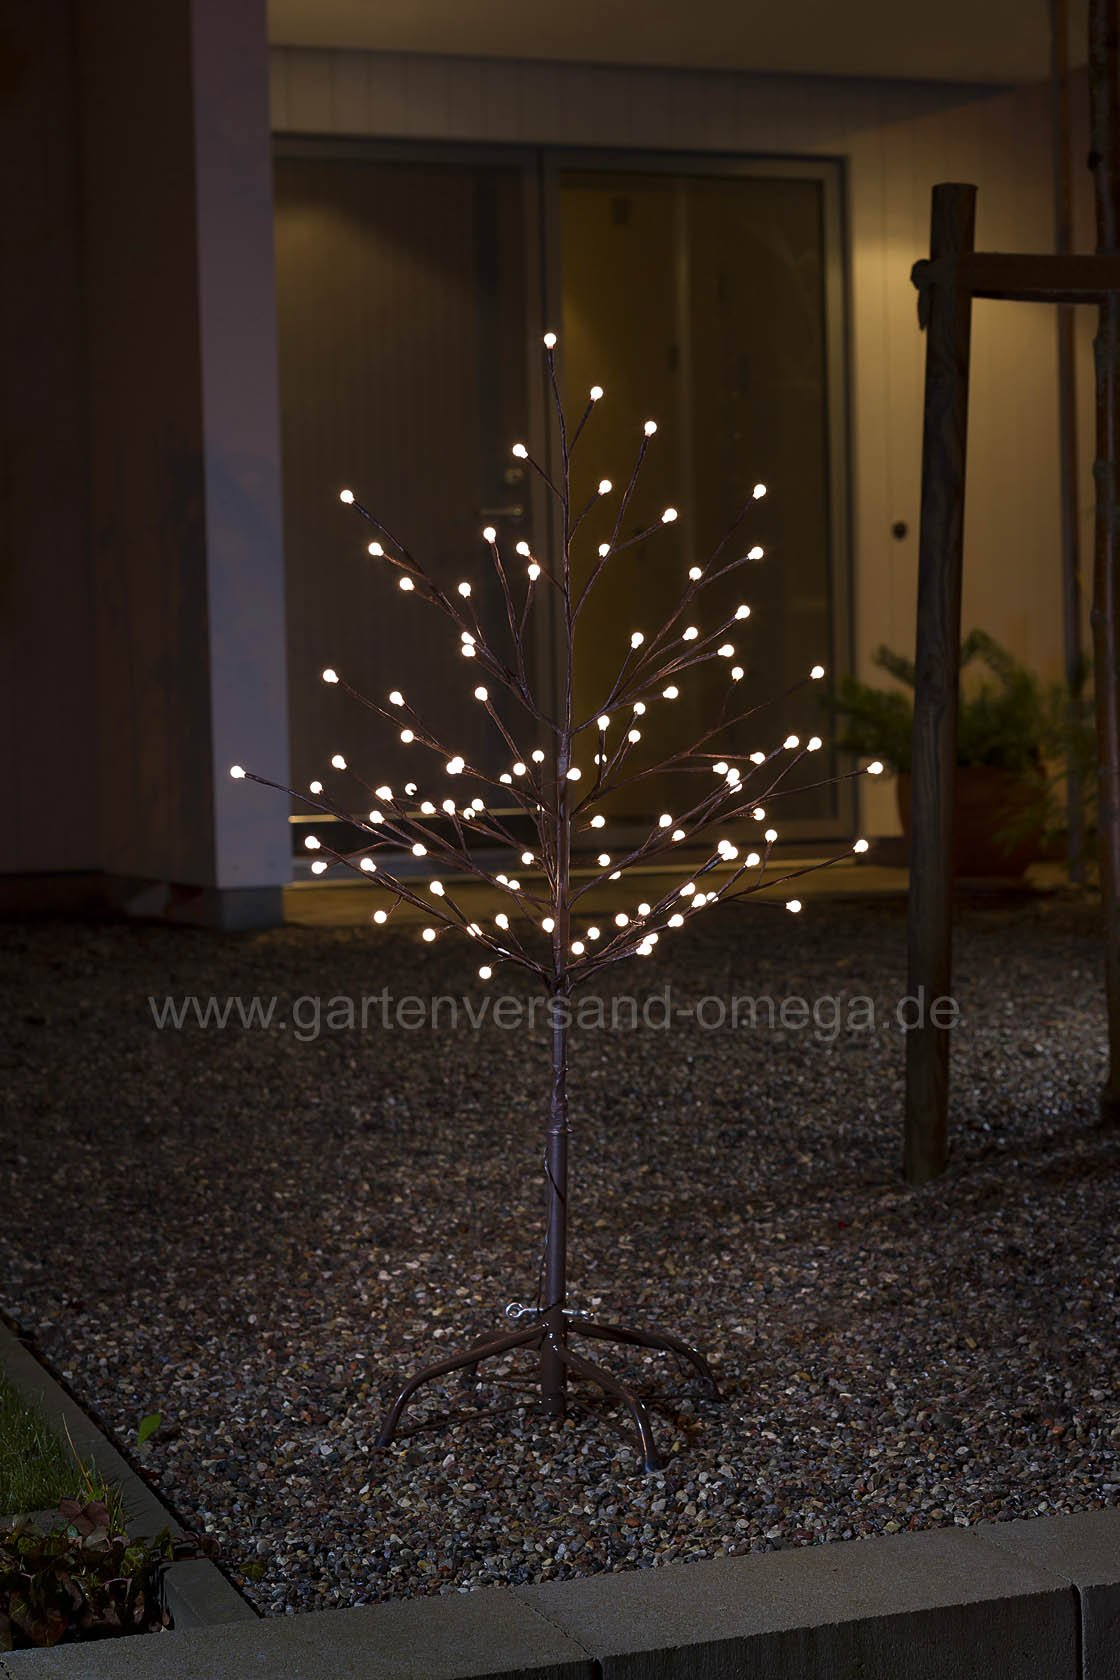 led lichterbaum braun lichterzweig led baum gartendekoration beleuchtet winterbeleuchtung. Black Bedroom Furniture Sets. Home Design Ideas